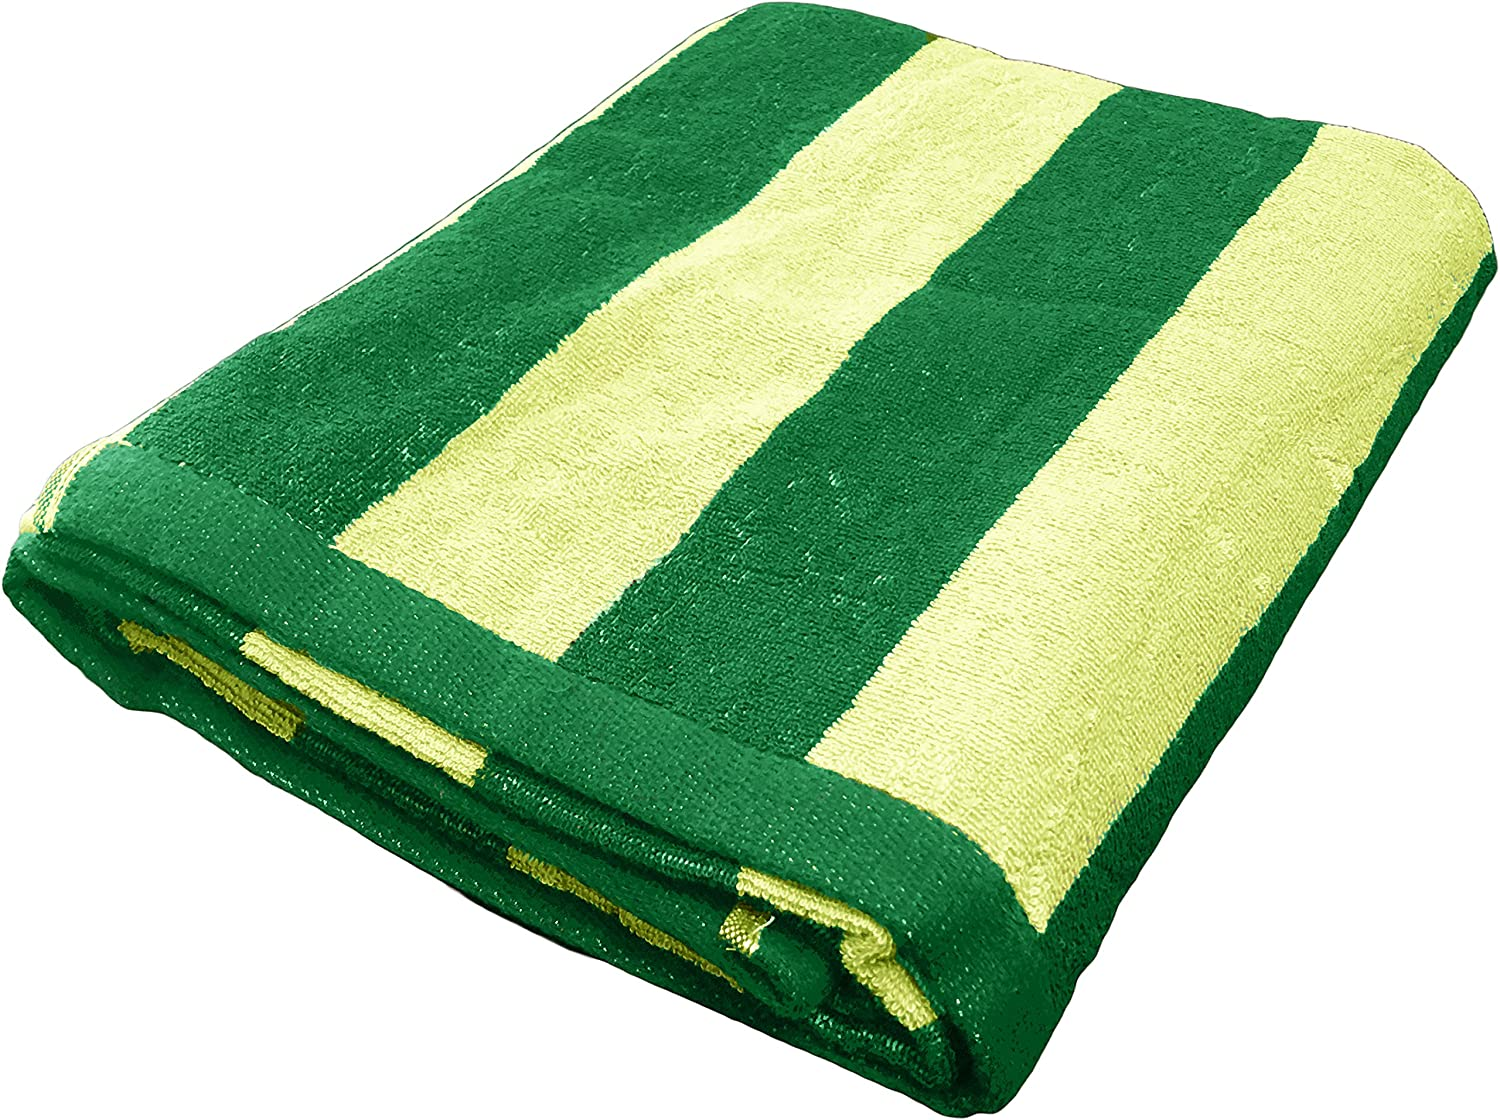 """Large Cabana Stripe Beach Towel - Fast Drying Cotton Lightweight Summer Towel - Made with 100% Turkish Cotton, 35"""" x 70"""" (Forest Green - Lime)"""